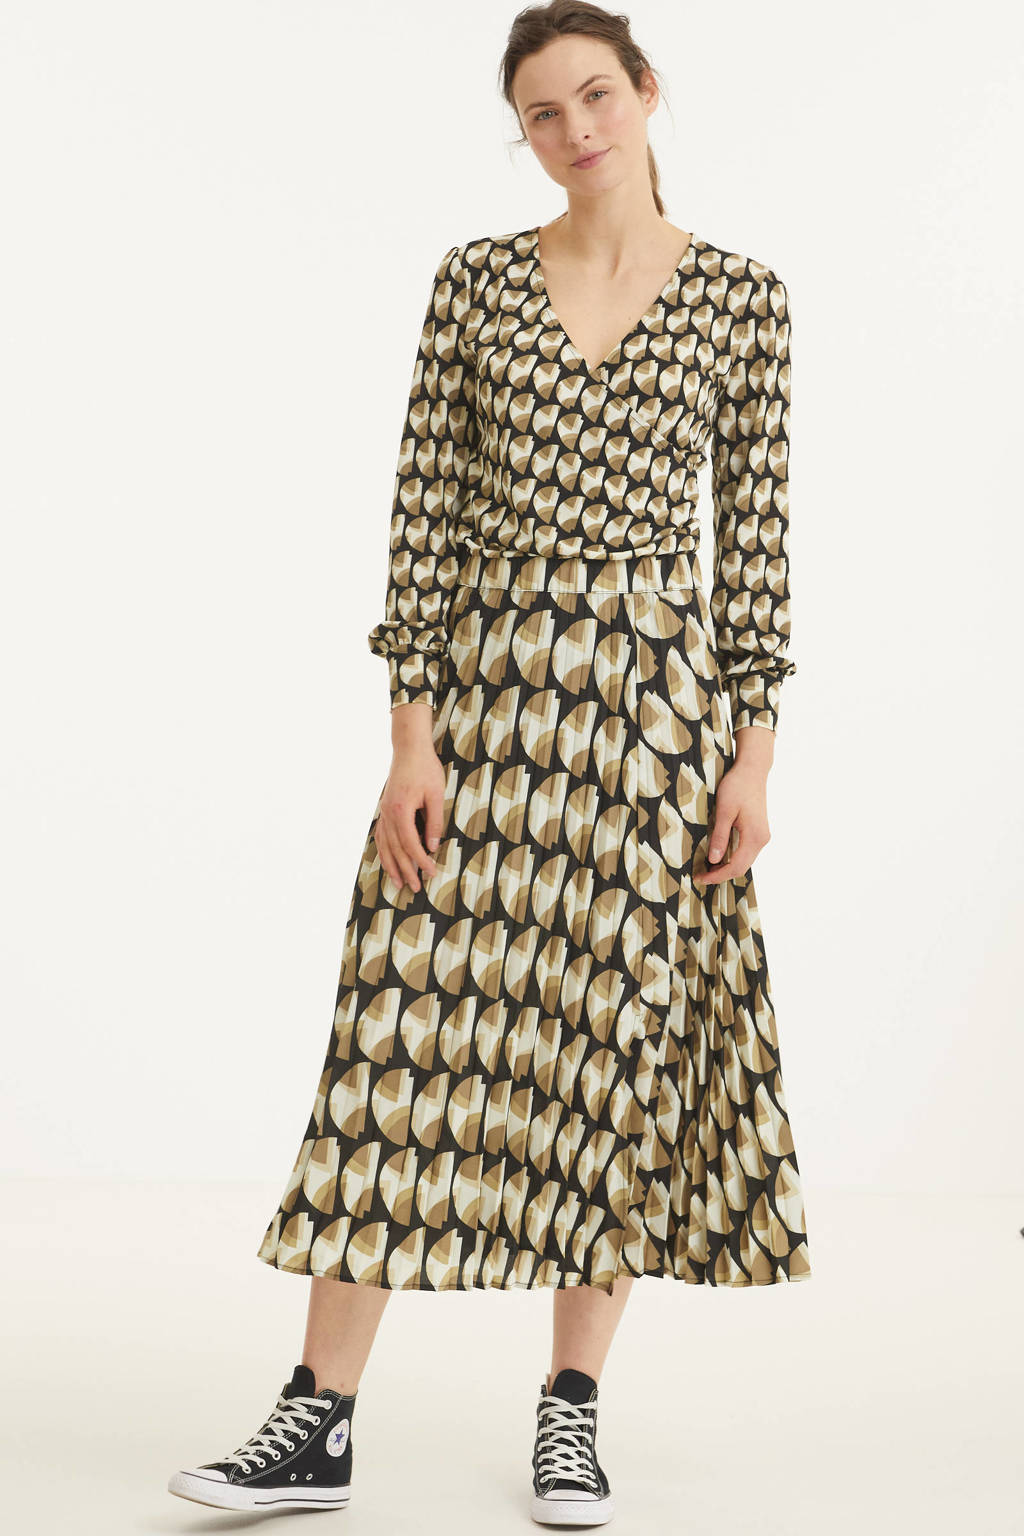 FREEQUENT rok FQPAULA-SK-MUST met all over print beige/bruin, Beige/bruin